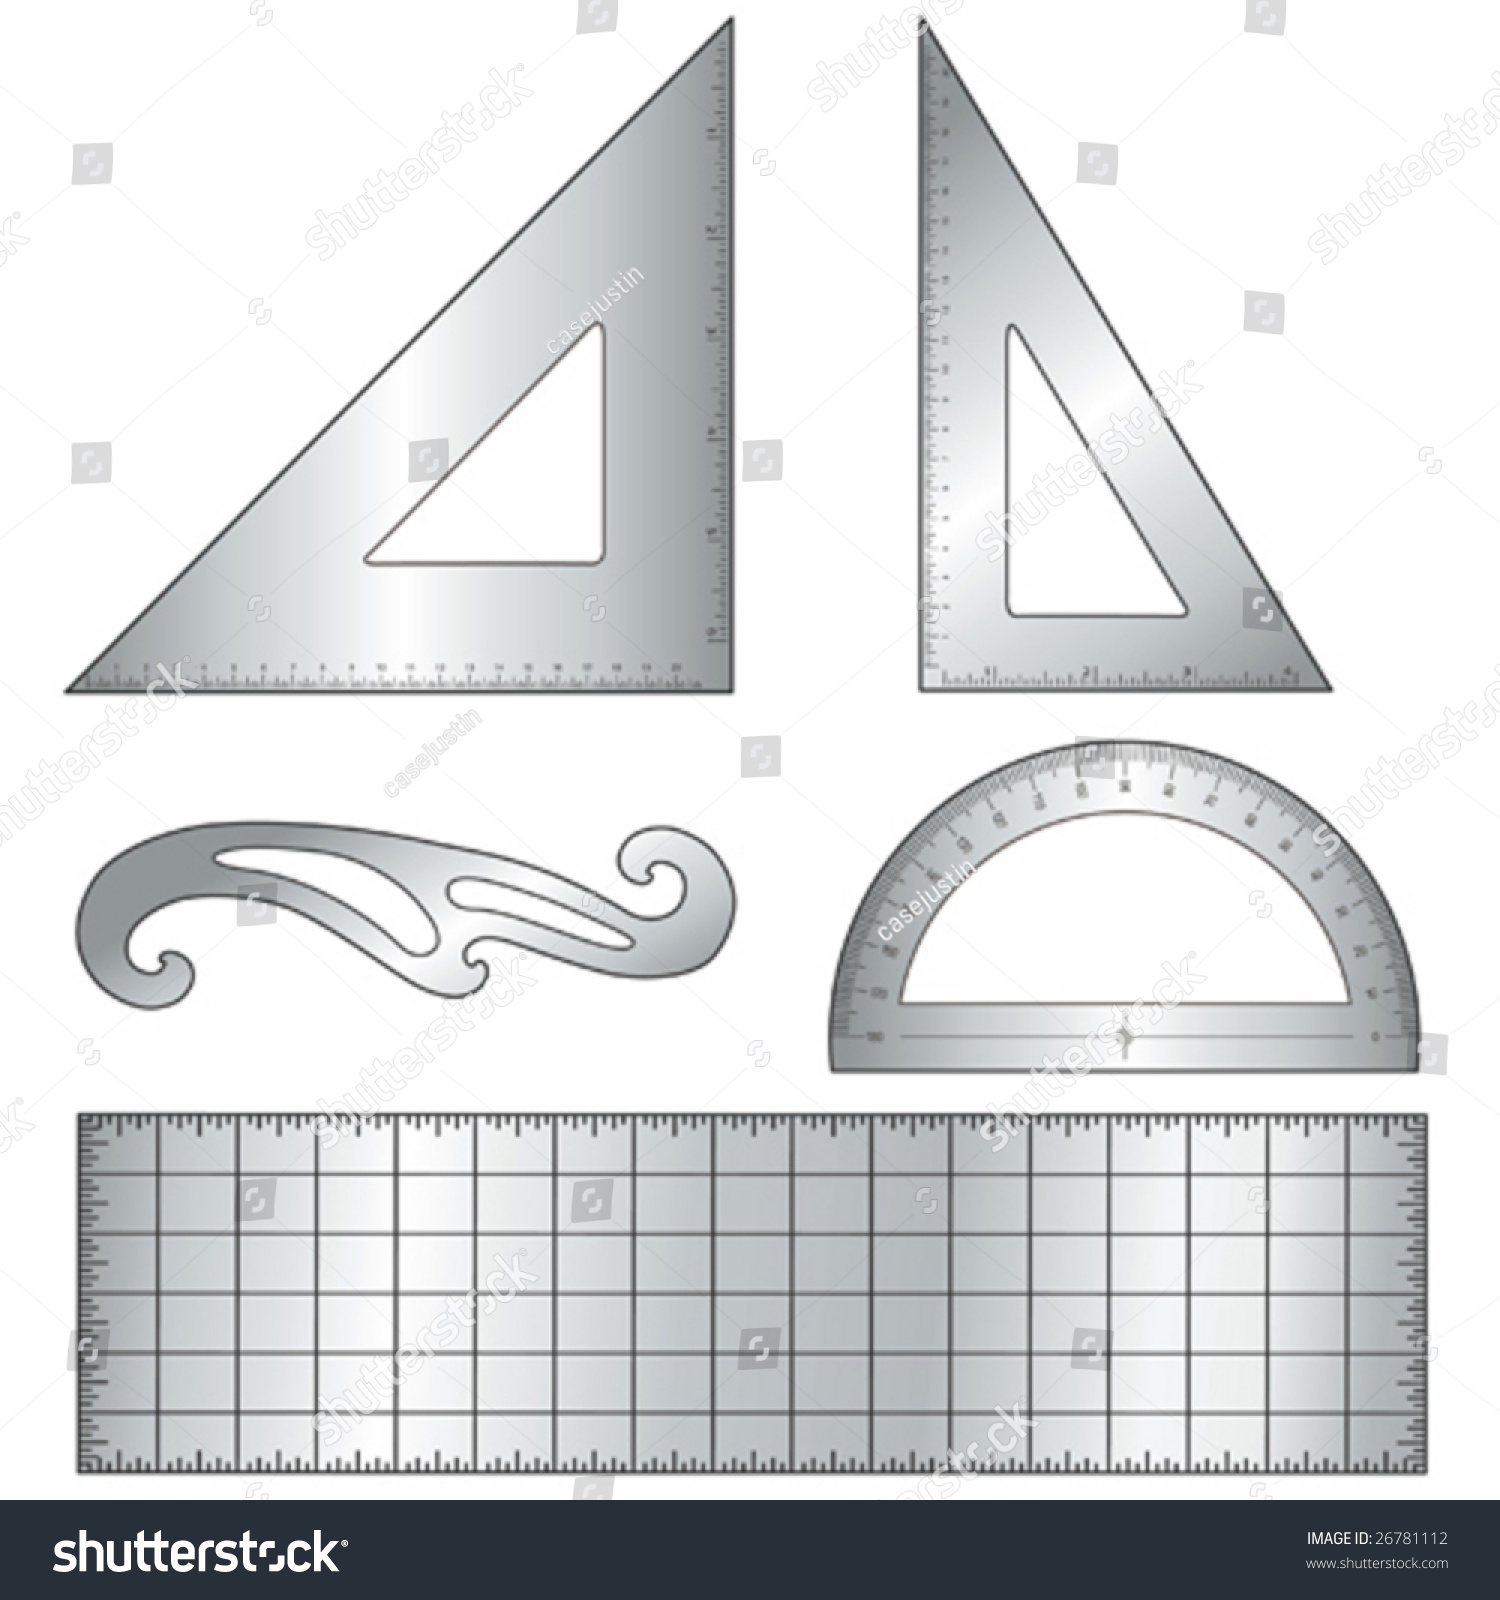 Drafting Tools For Architecture And Engineering: 45 Degree Triangle, 60  Degree Triangle, Ruler